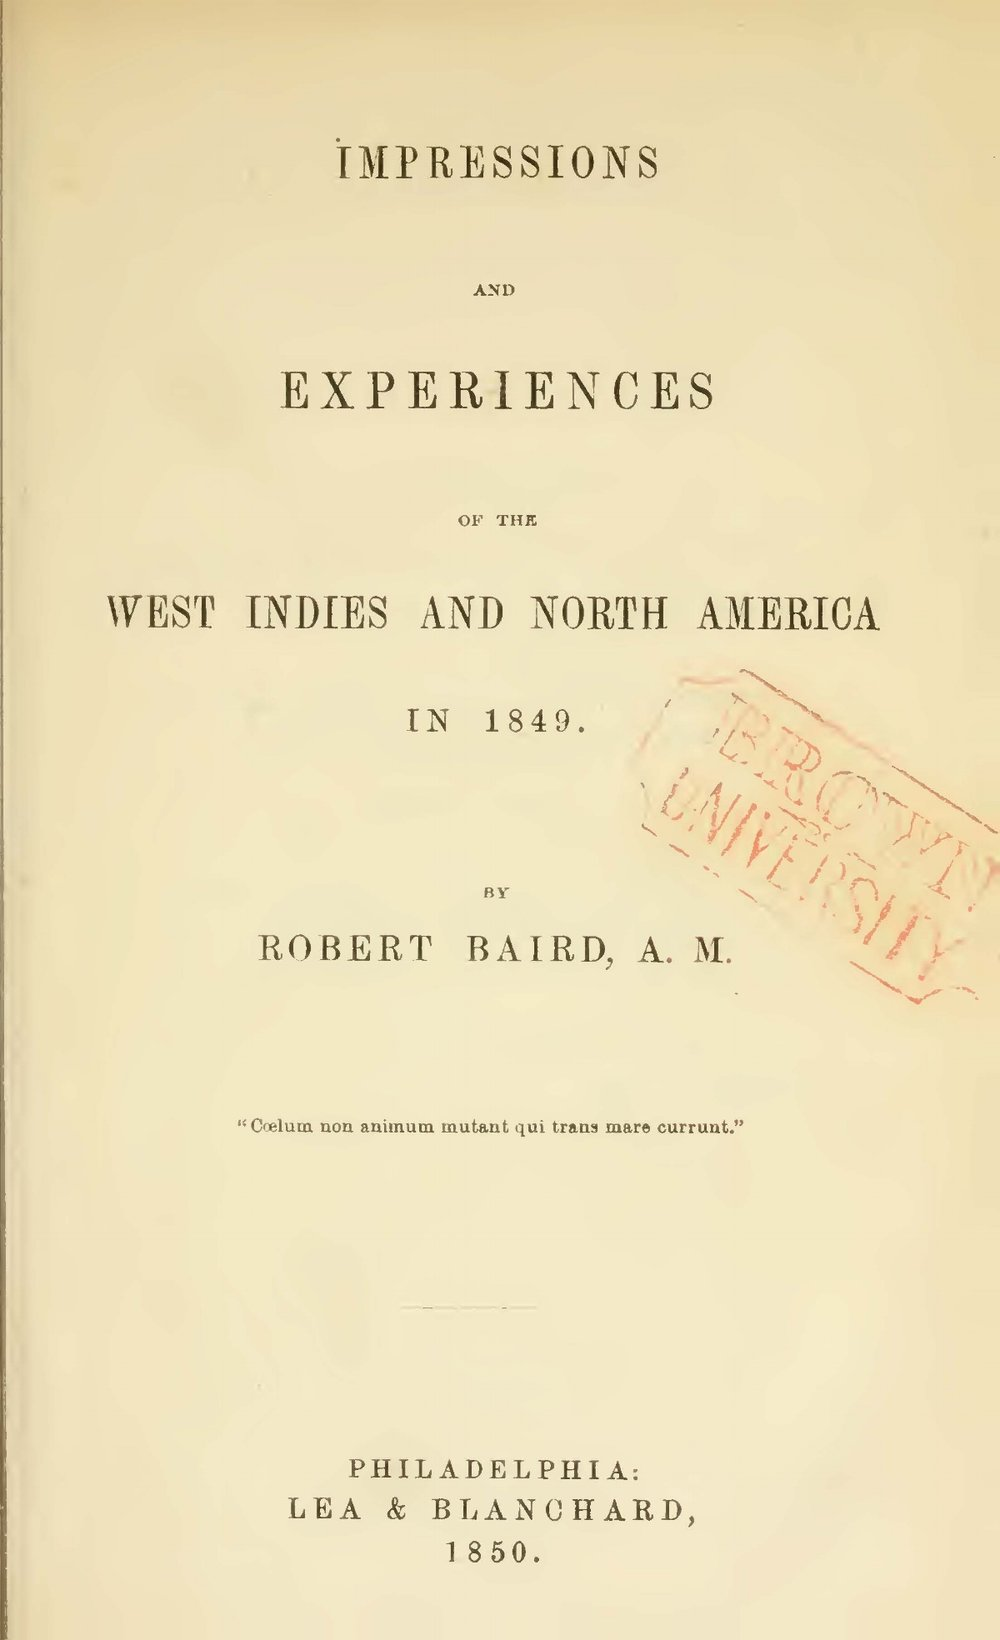 Baird, Robert, Impressions and Experiences of the West Indies and North America in 1849 Title Page.jpg